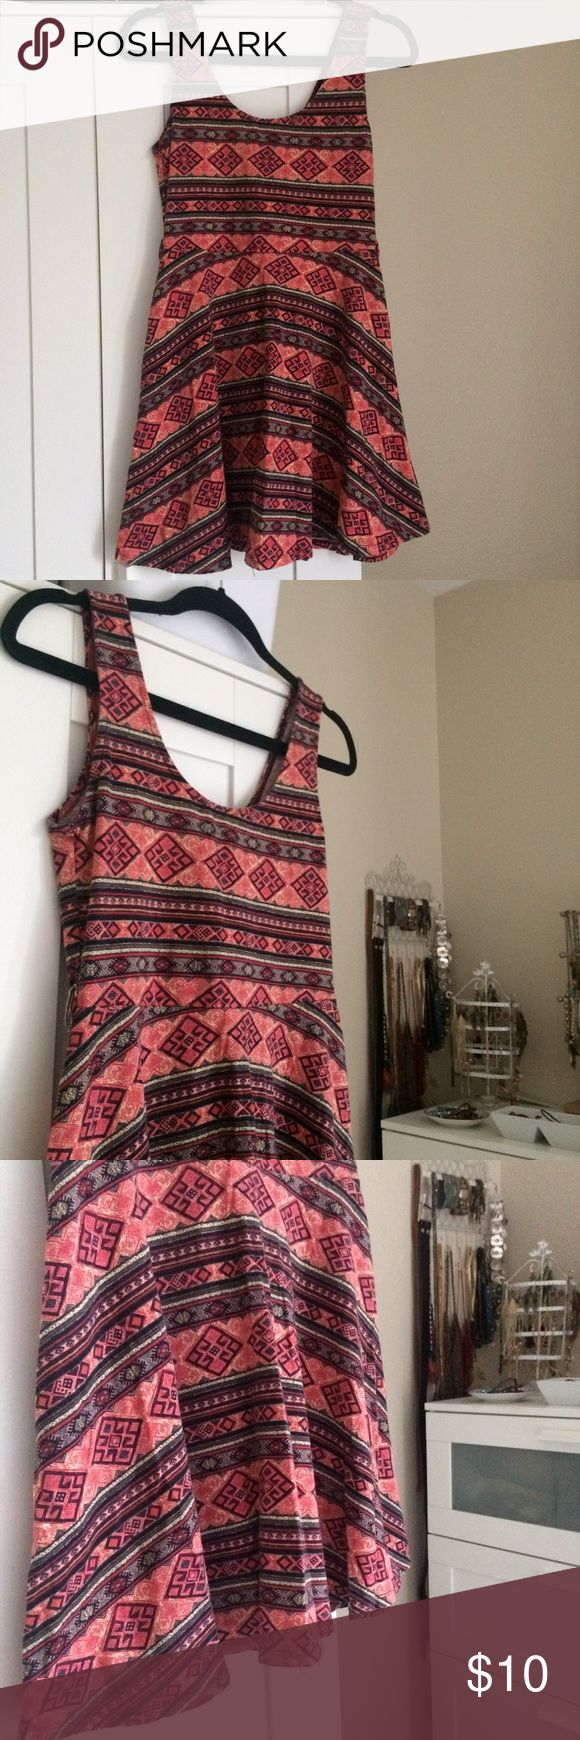 forever 21 aztec boho festival print skater dress soft, stretchy, lightweight skater dress by forever 21 colorful aztec / southwest / boho print  lightly worn & washed a few times so fabric is very lightly faded, but still in very good used condition tagged size M & could fit S-L, depending on fit preference Forever 21 Dresses Mini